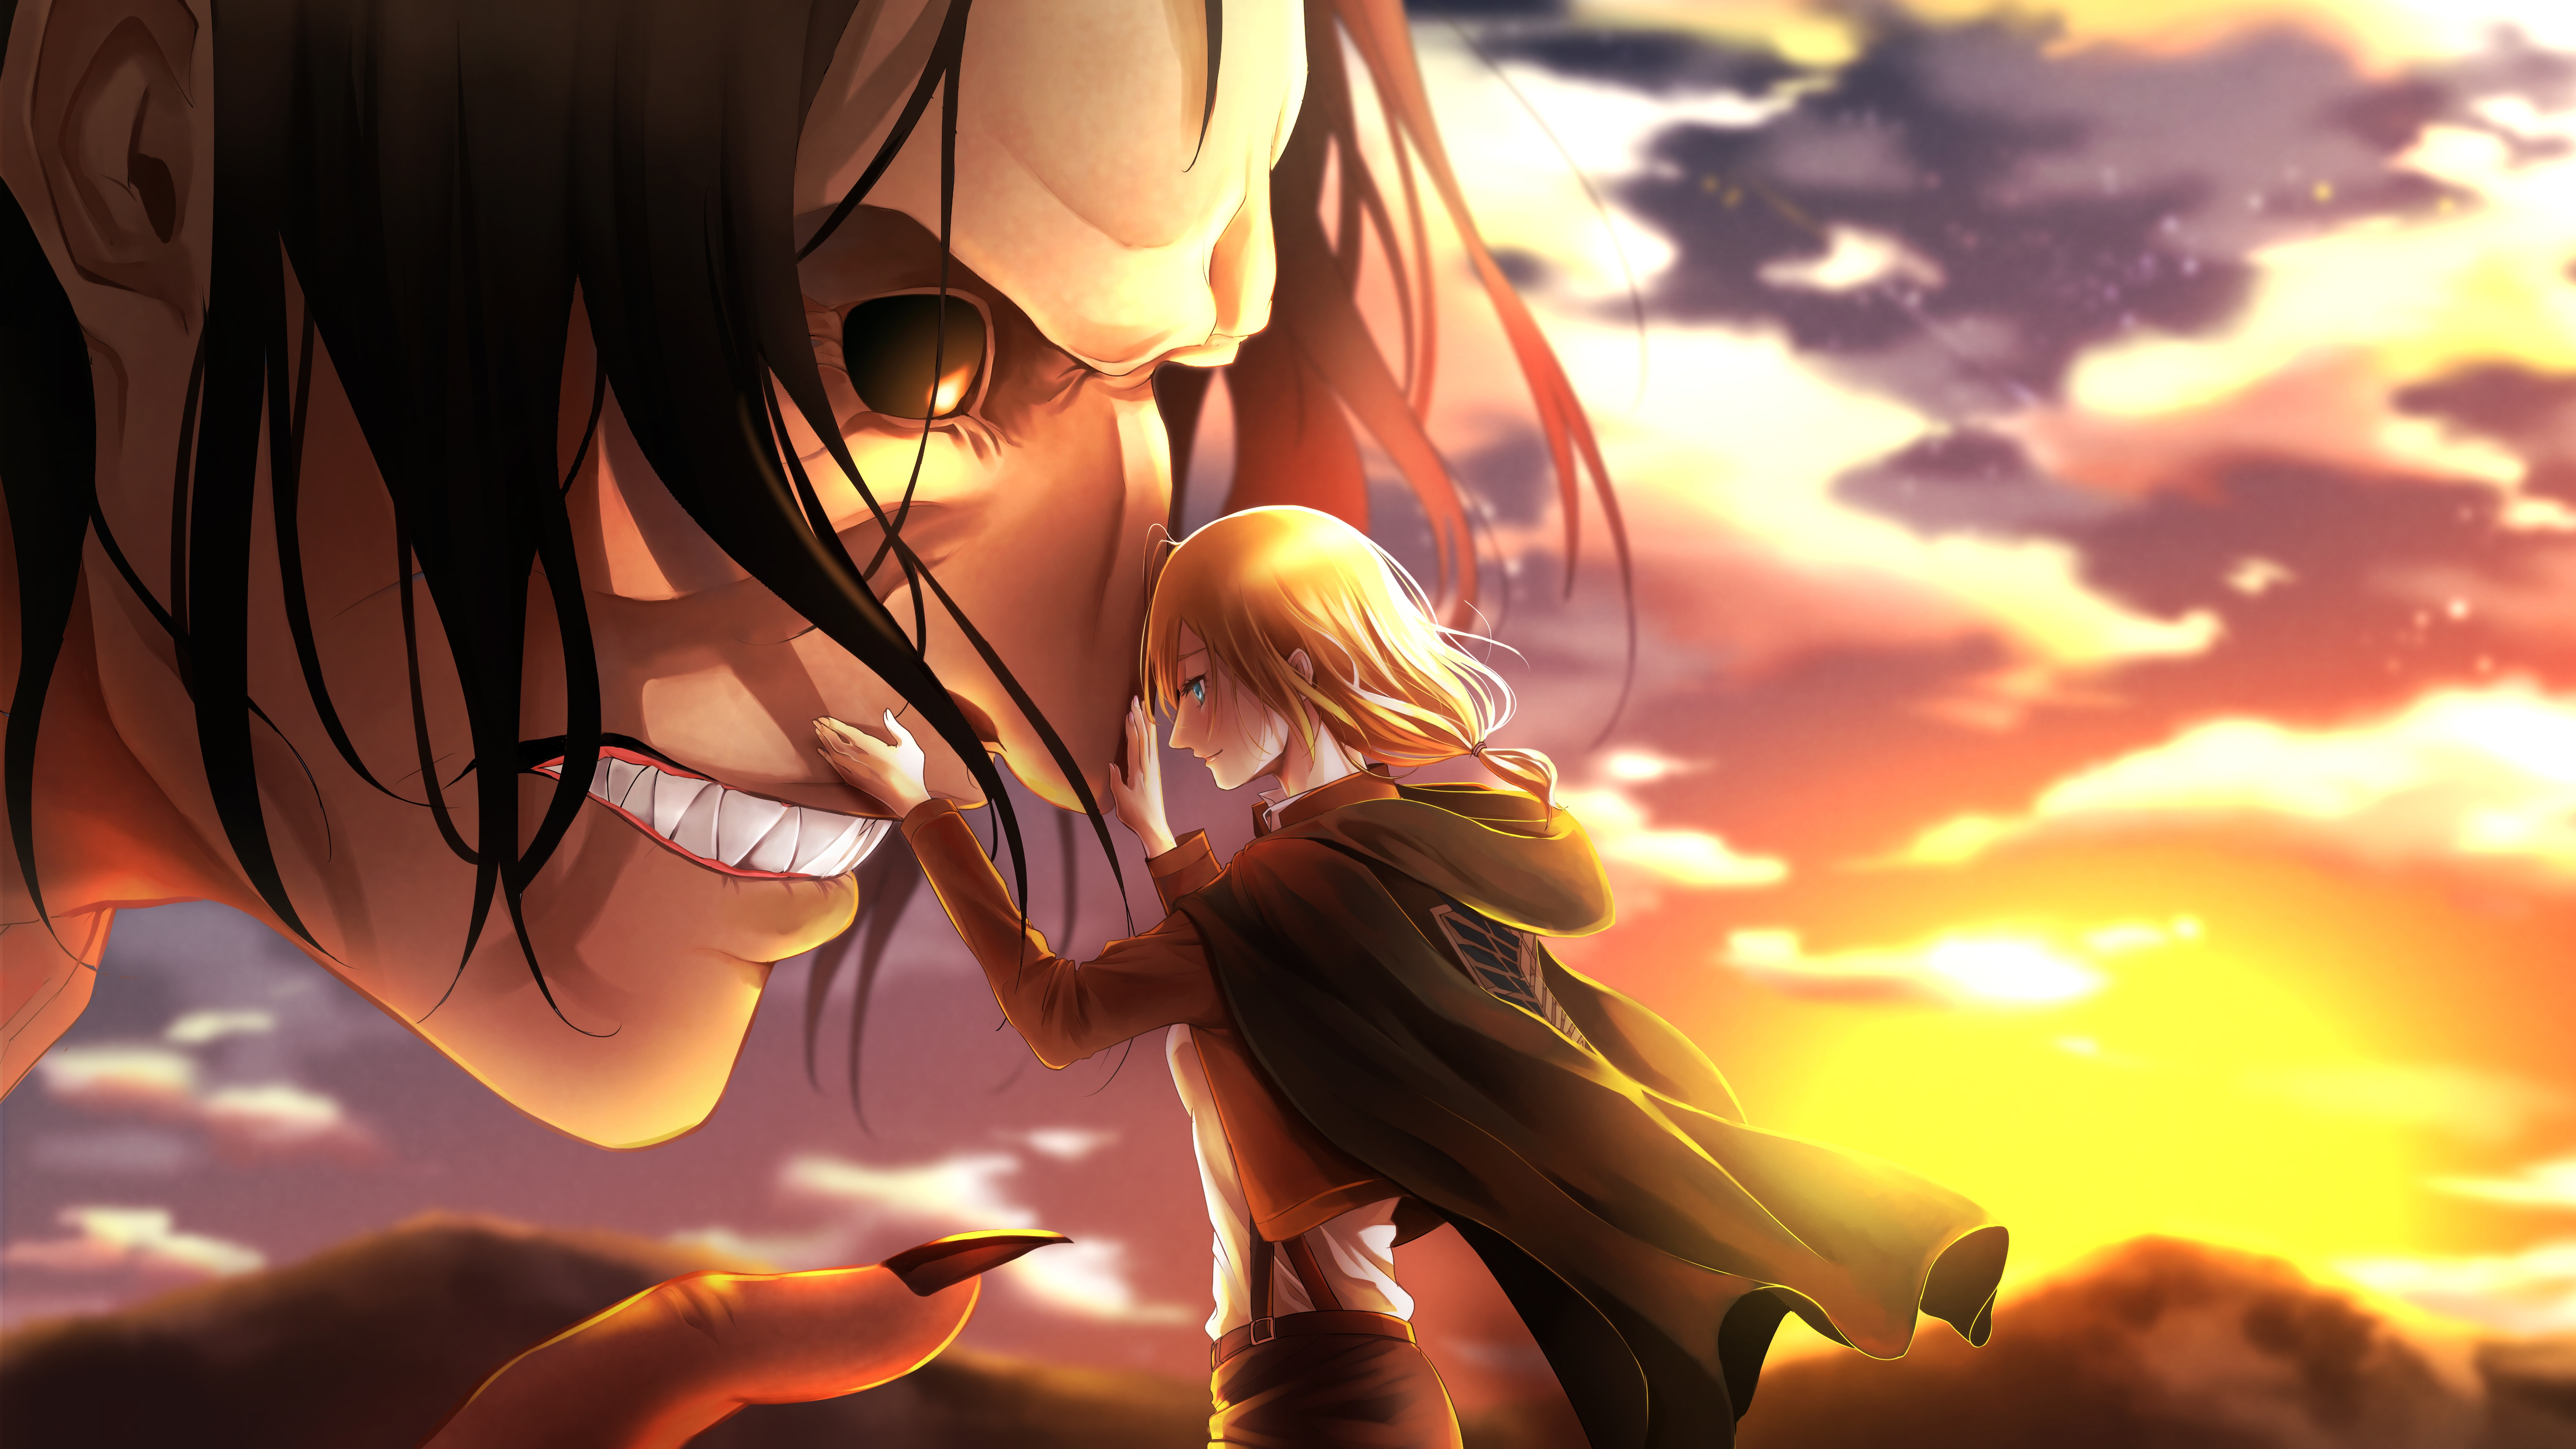 1336x768 Attack On Titan Mina Carolina Laptop Hd Hd 4k Wallpapers Images Backgrounds Photos And Pictures